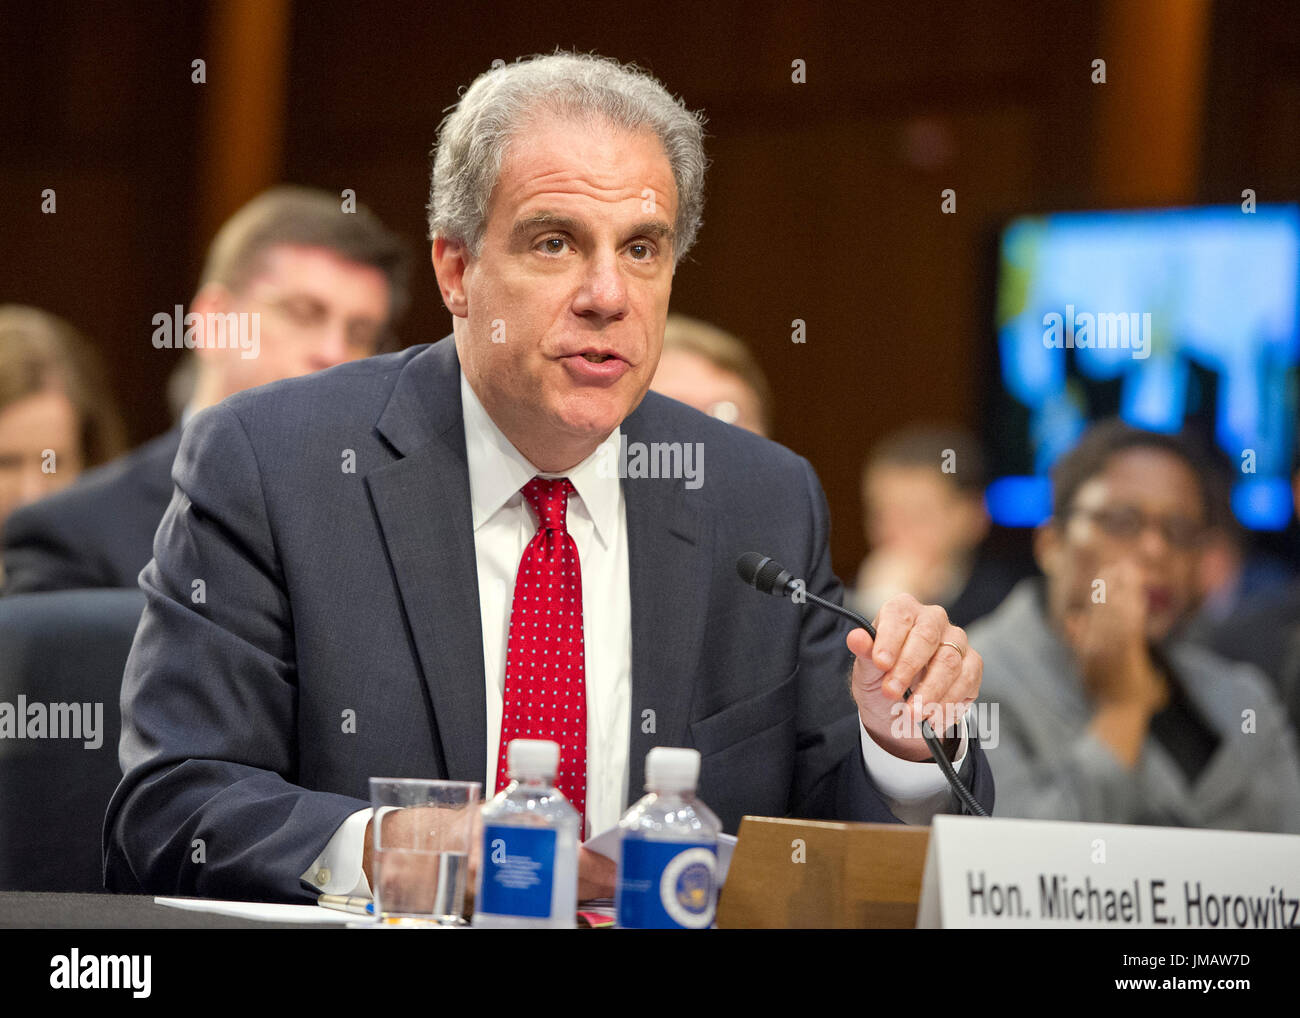 Washington, Us. 26th July, 2017. Michael Horowitz, Inspector General, United States Department Of Justice, appears to testify before the US Senate Committee on the Judiciary oversight hearing to examine the Foreign Agents Registration Act (FARA) and attempts to influence US elections, focusing on lessons learned from current and prior administrations on Capitol Hill in Washington, DC on Wednesday, July 26, 2017. Credit: Ron Sachs/CNP - NO WIRE SERVICE - Photo: Ron Sachs/Consolidated/dpa/Alamy Live News - Stock Image